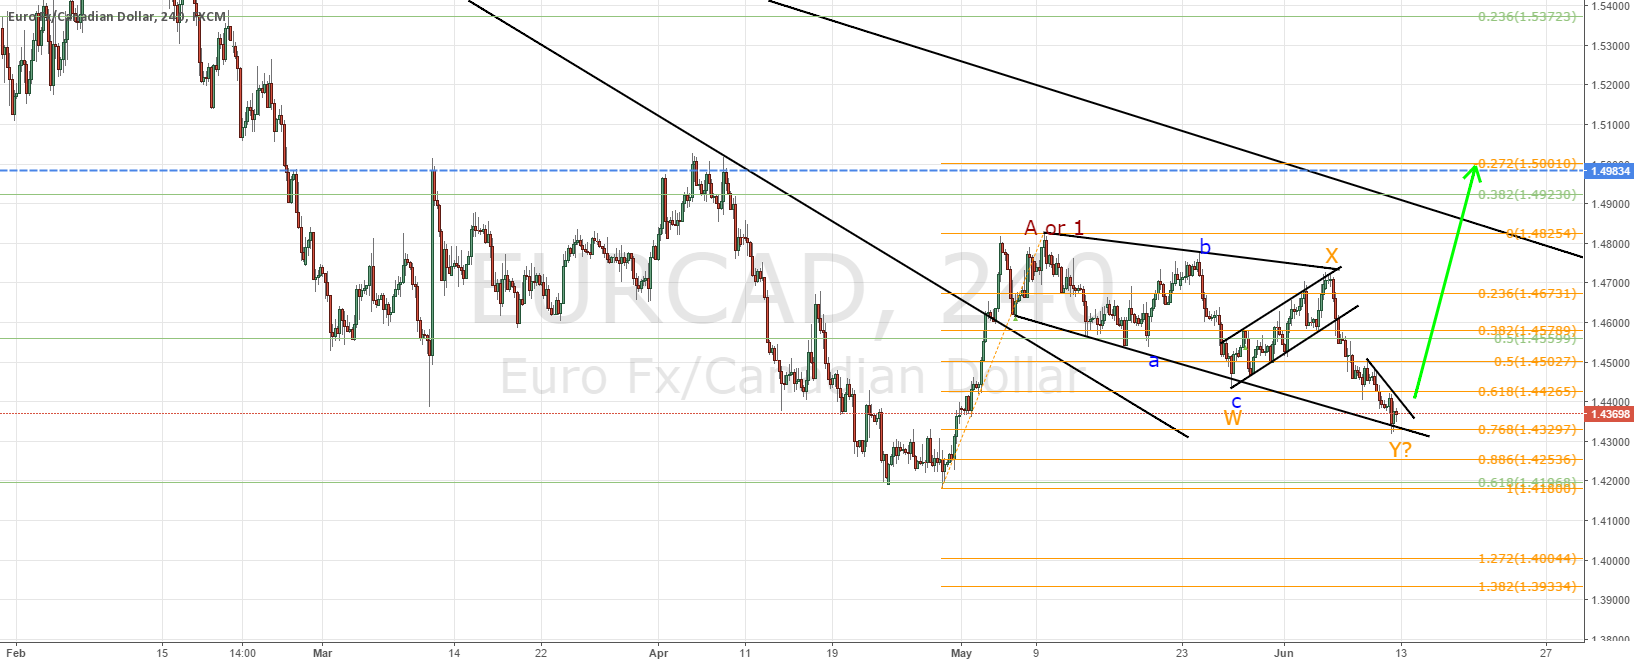 EURCAD according to plan, follow up (and example how to trade)